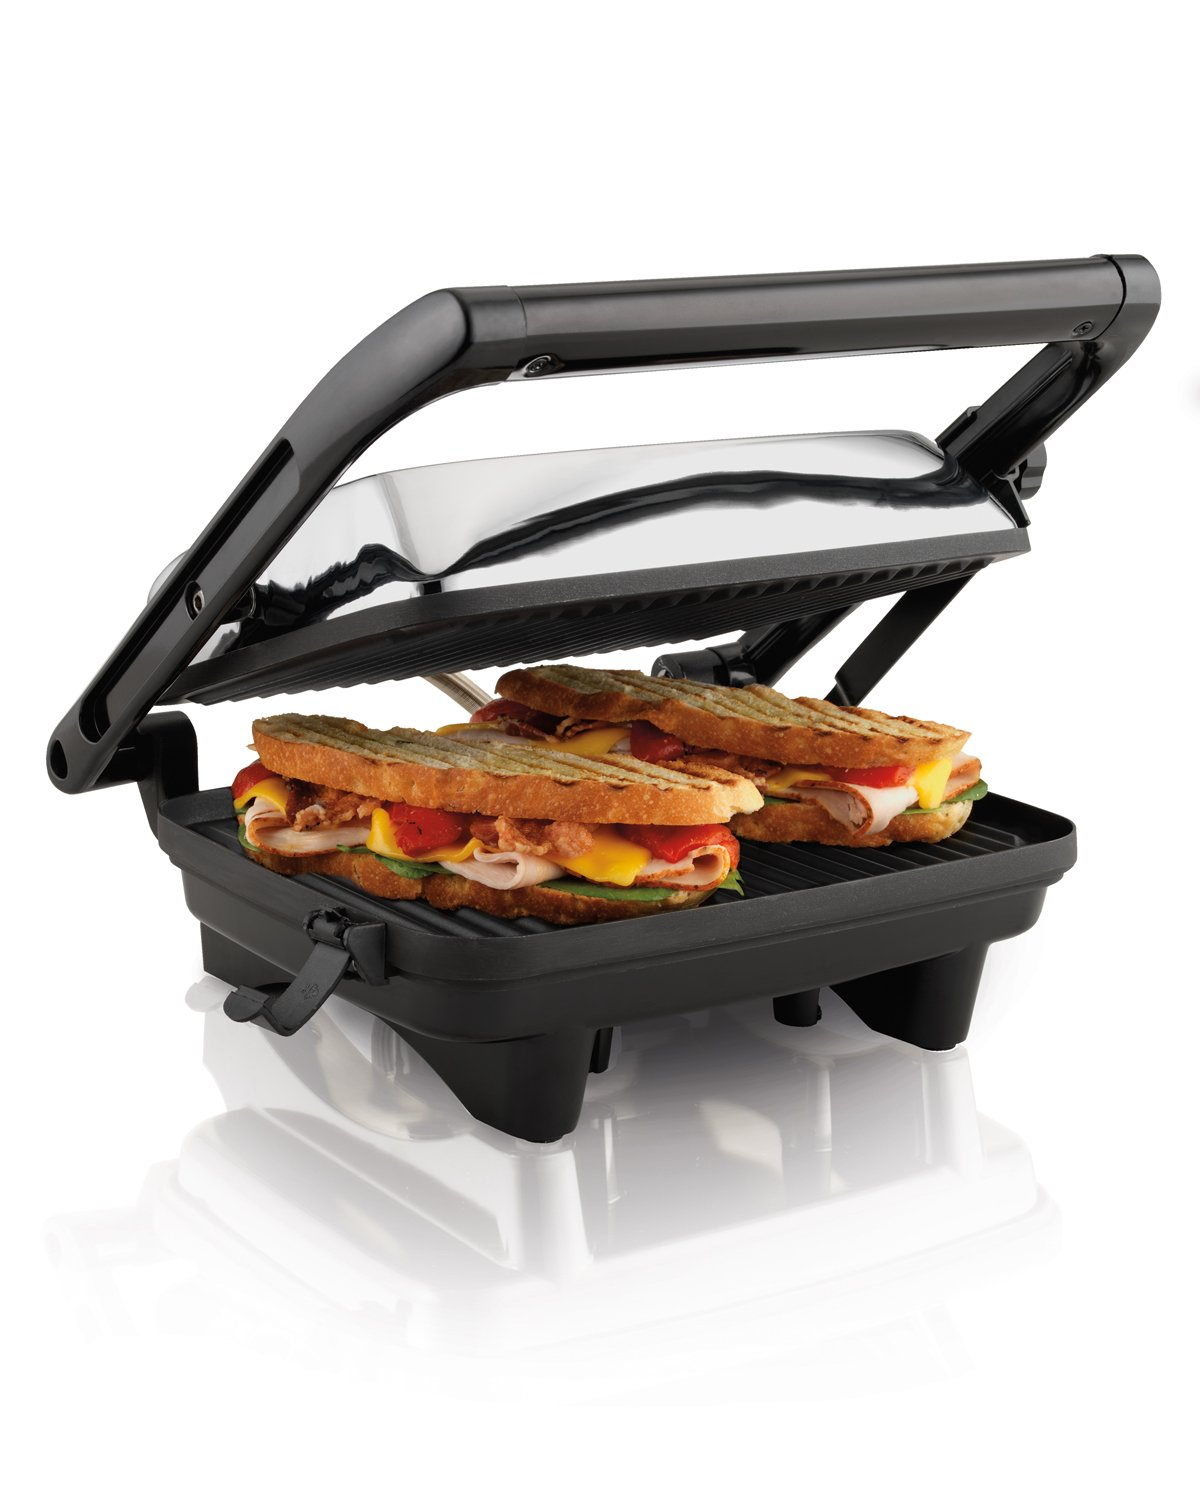 Hamilton Beach Sandwich Maker | amazon.com